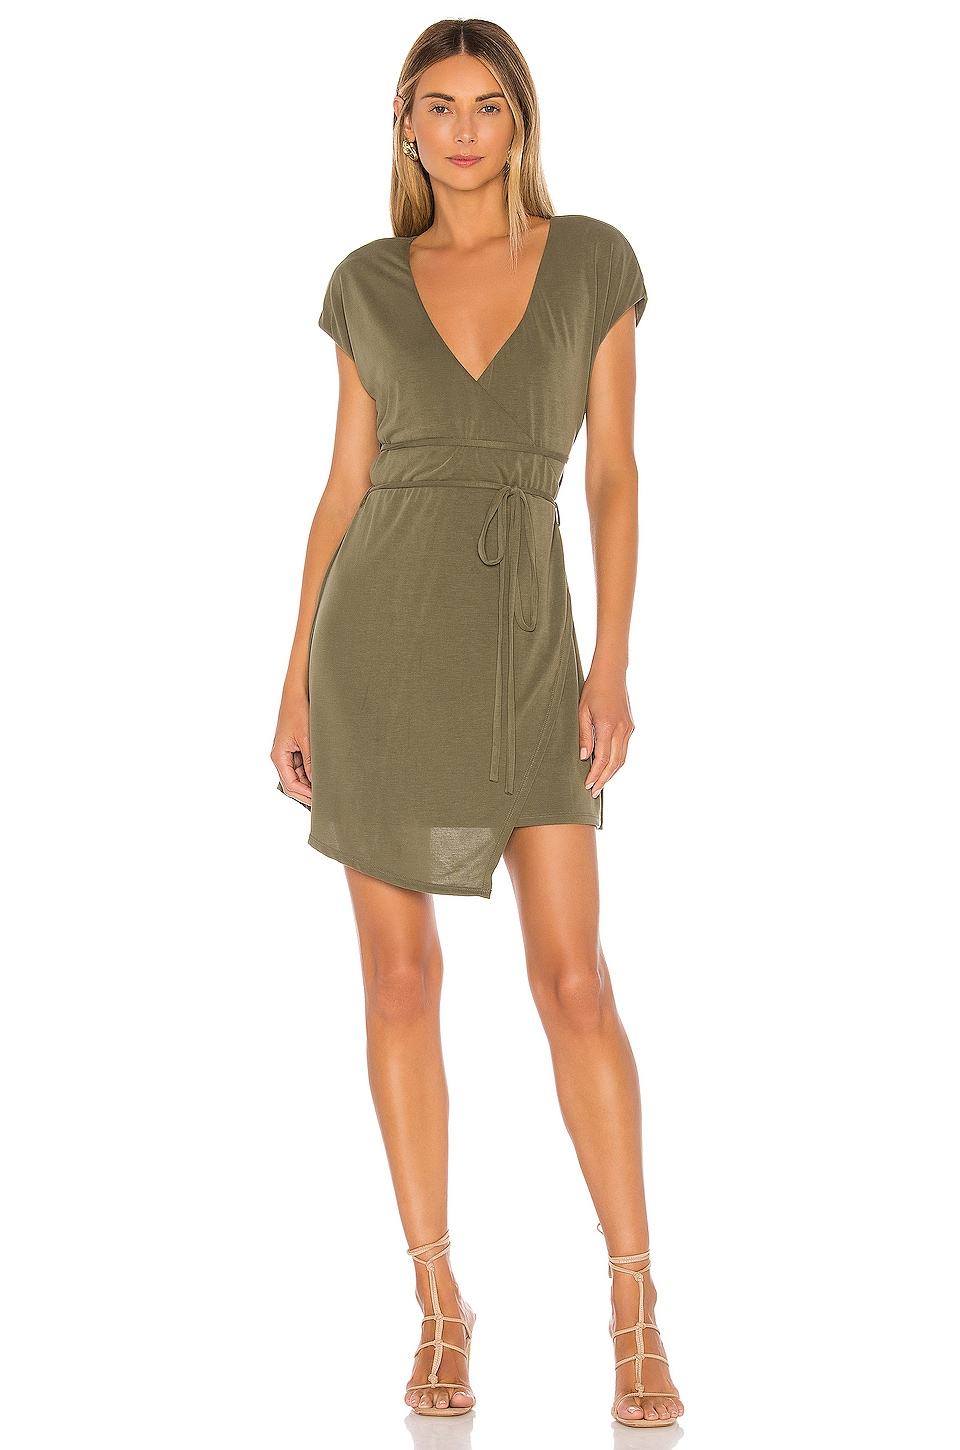 House of Harlow 1960 X REVOLVE Joanna Mini Dress in Olive Green